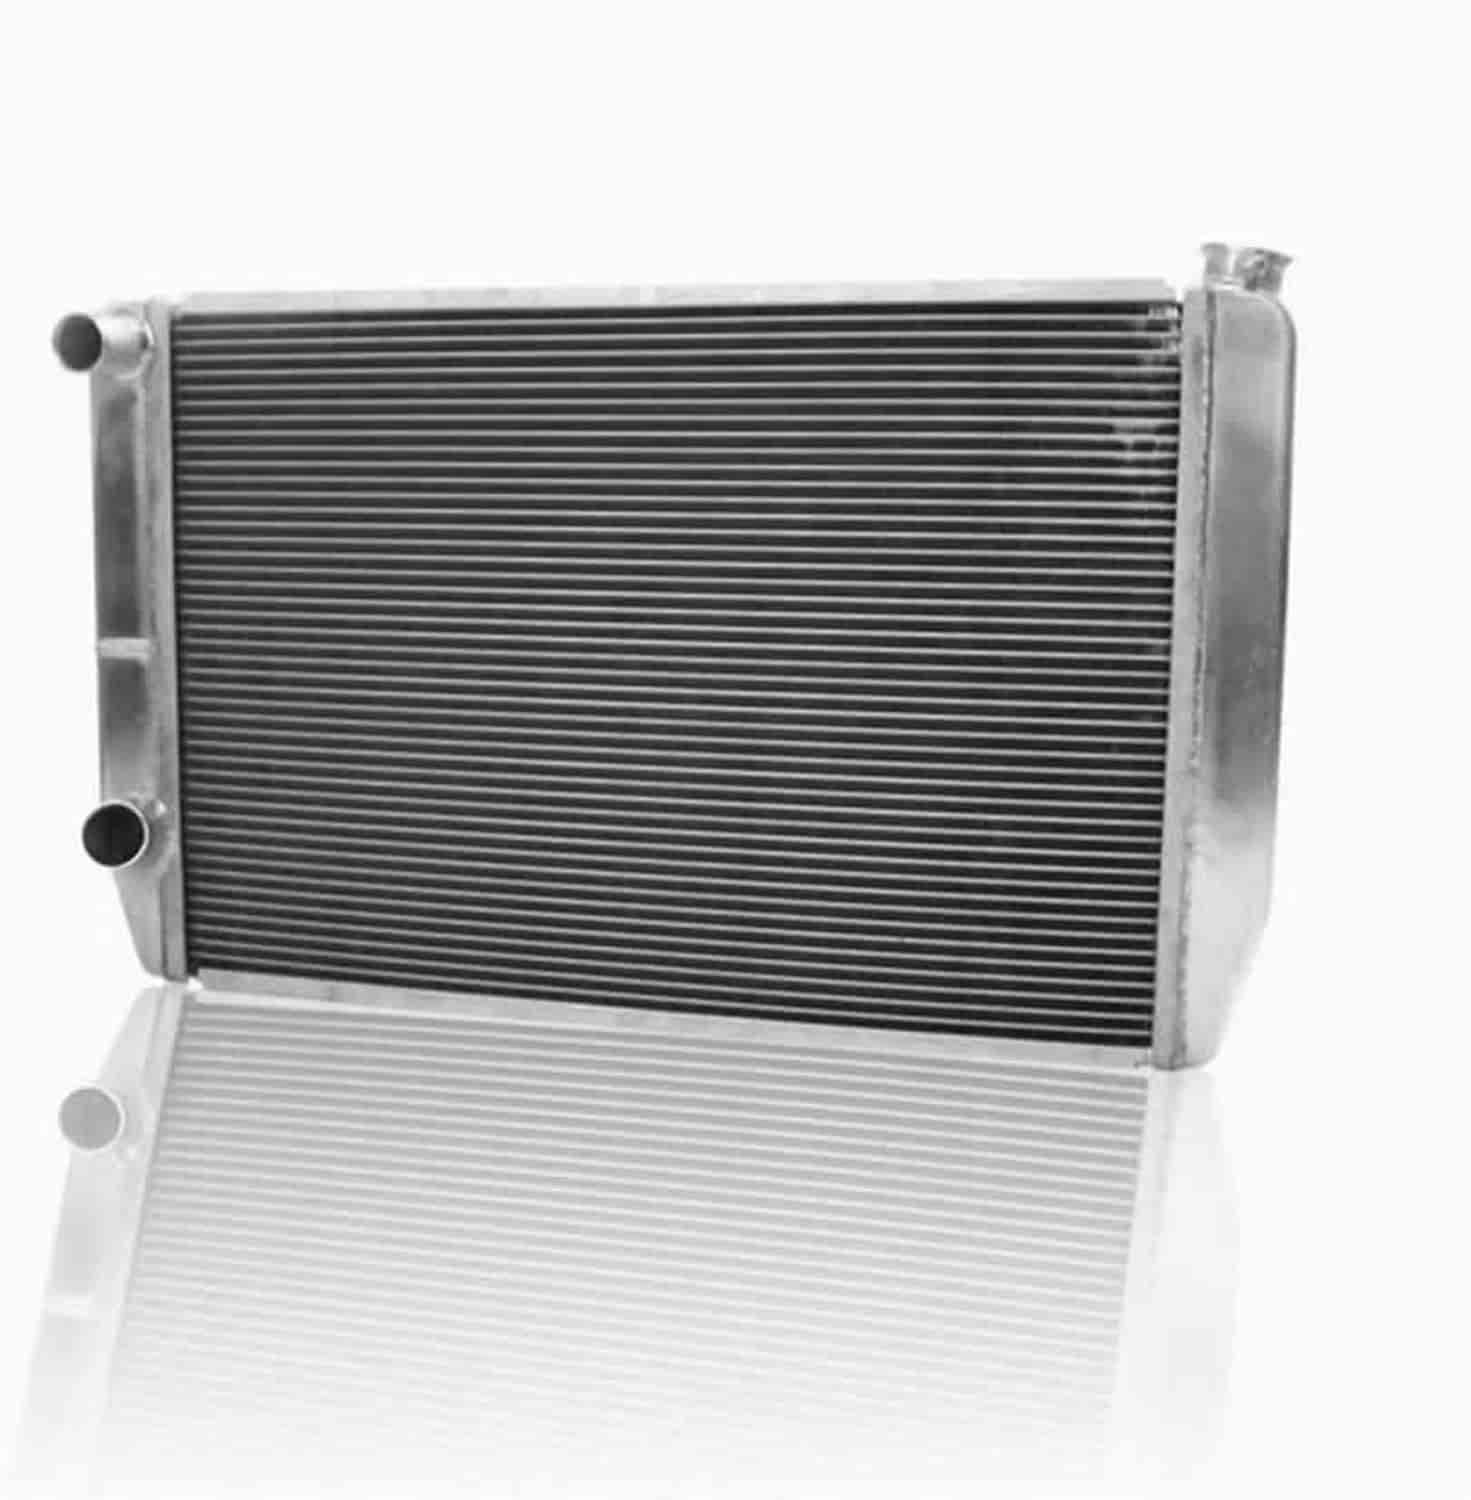 Griffin Radiators 1-29272-X